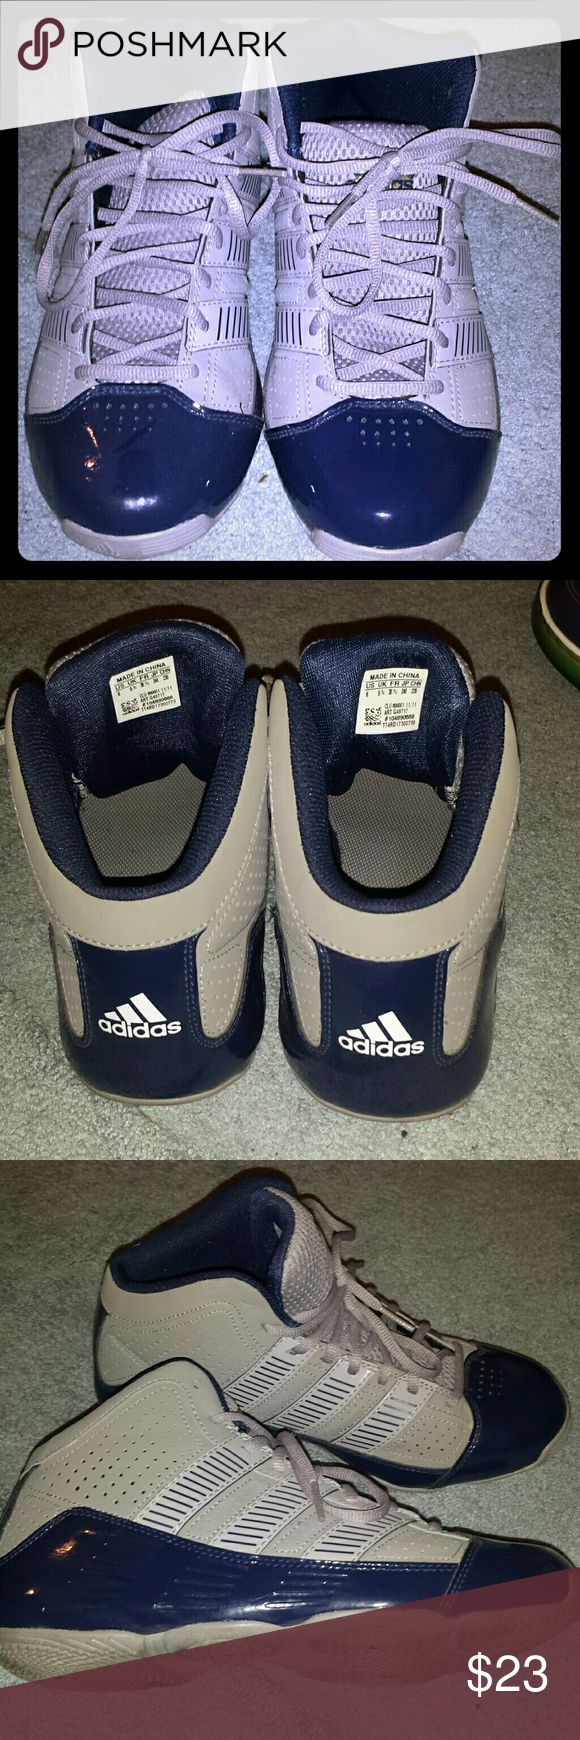 ADIDAS MID TOP SNEAKERS BIG BOYS SIZE 6M ONLY WORN ONCE, TOO SMALL, EXCELLENT CONDITION, NO SCUFFS OR SCRATCHES Adidas Shoes Sneakers